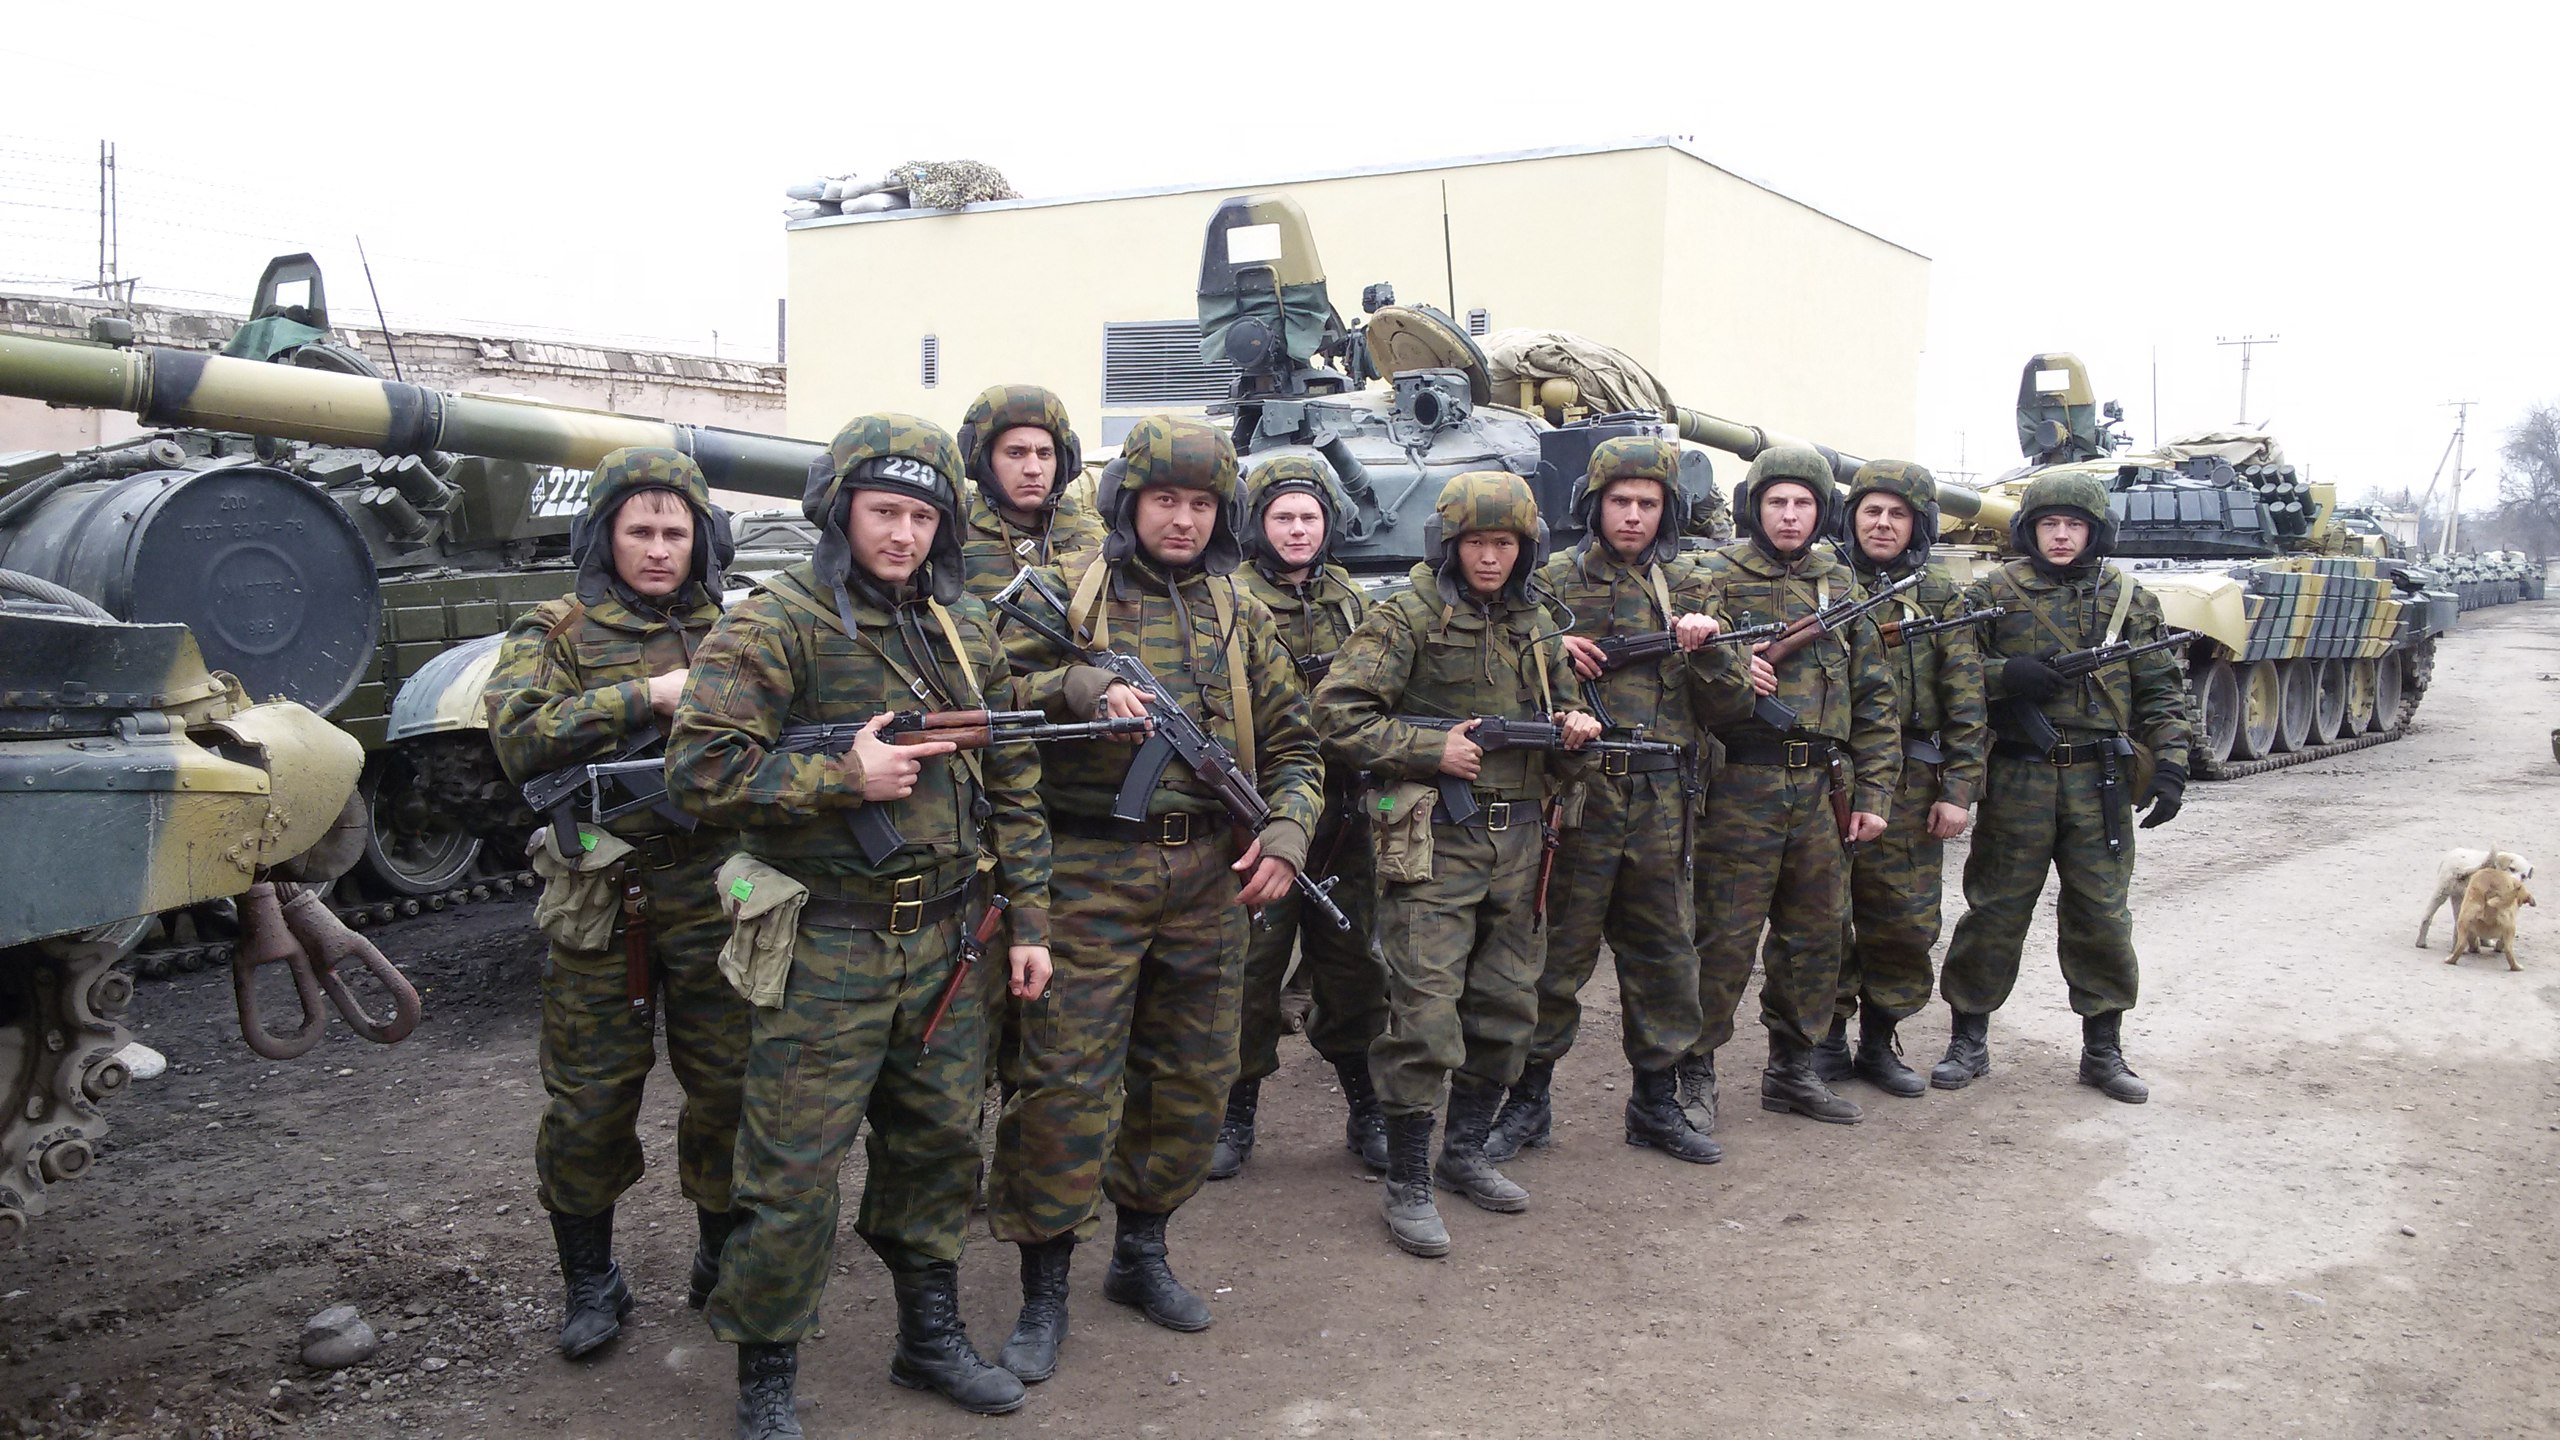 Russian Military Photos and Videos #2 - Page 32 DuEfqW05DYQ